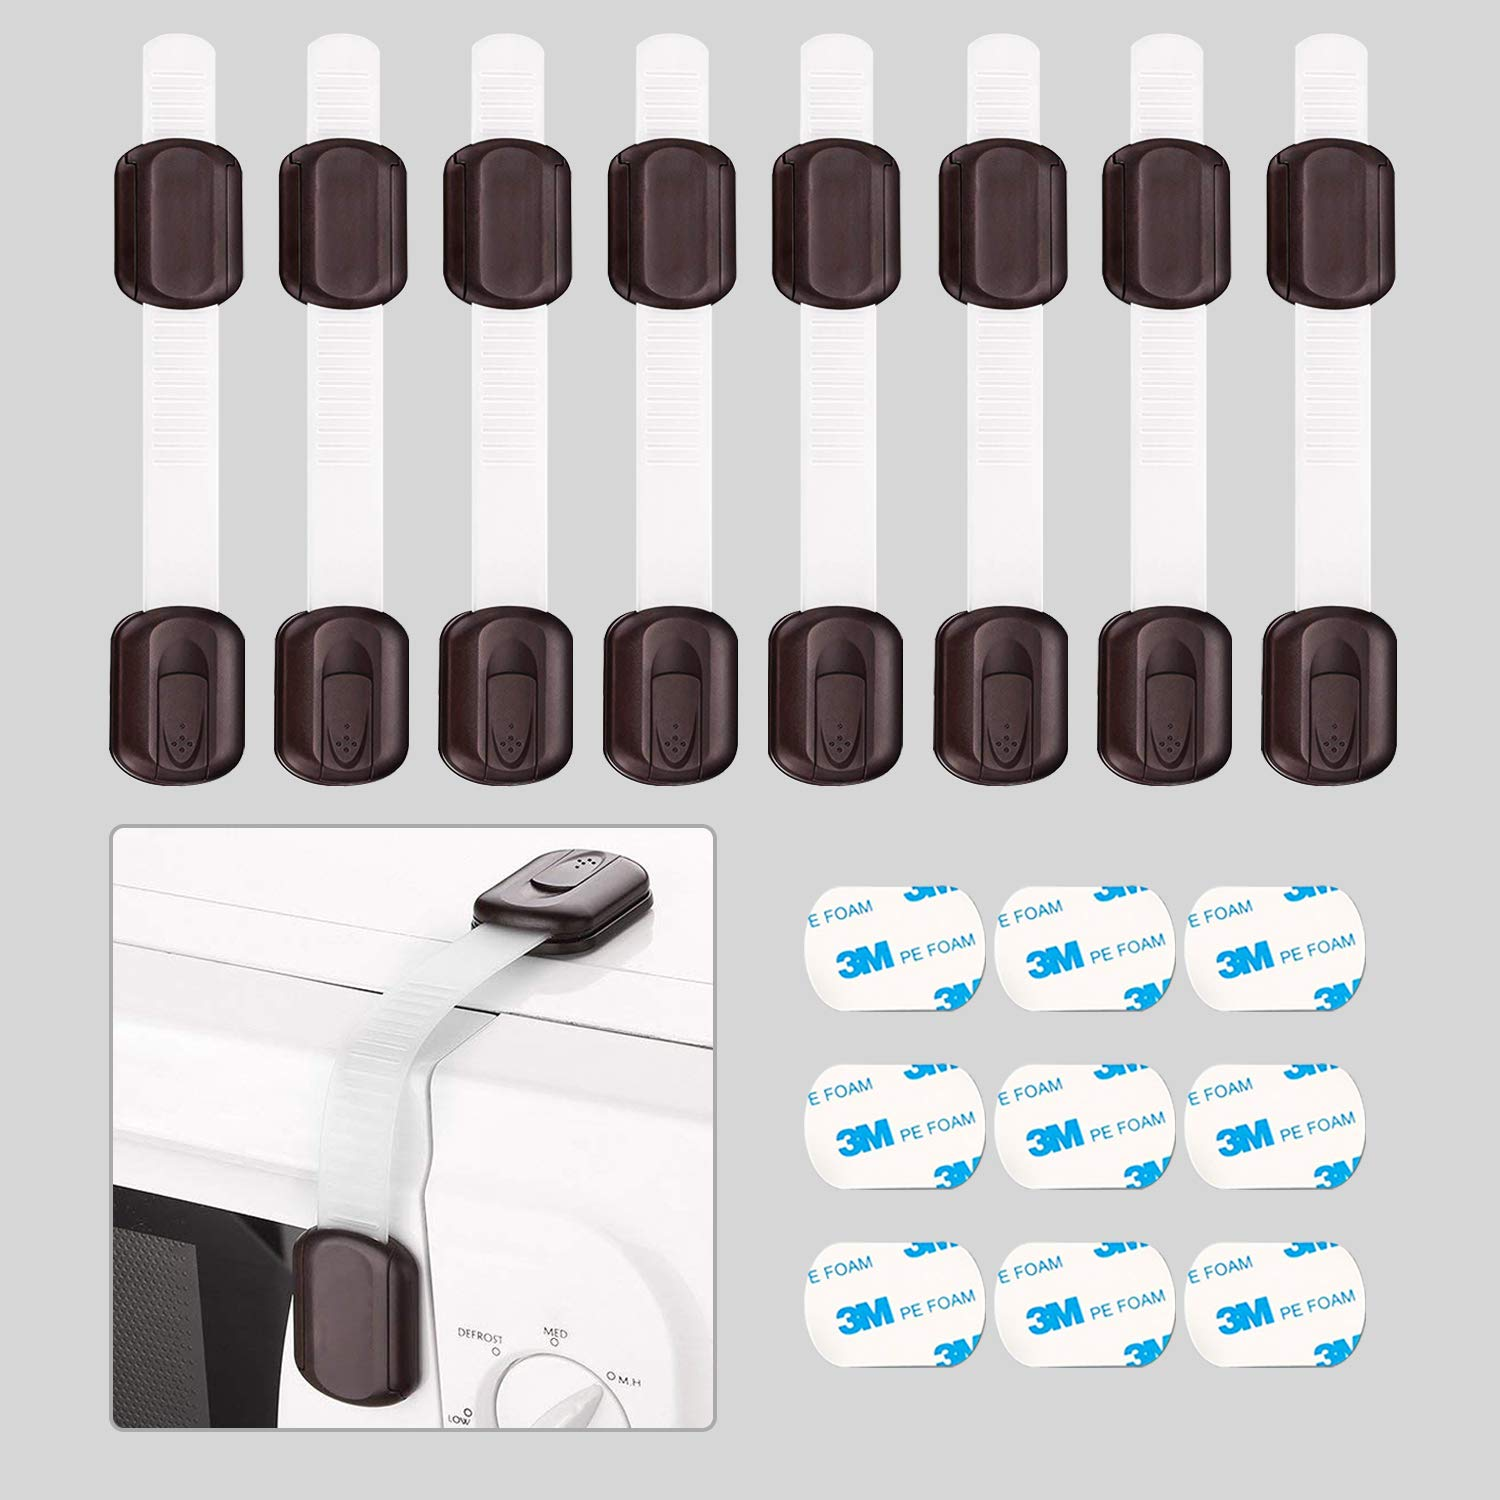 Baby Safety Locks - Child Proof Adjustable Latches for Cupboard Doors and Drawers Dresser Doors Closet Toilet Seat Oven Refrigerator Appliances,8 Pack Brown,Free 9 Extra 3M Adhesive Pads Maveek